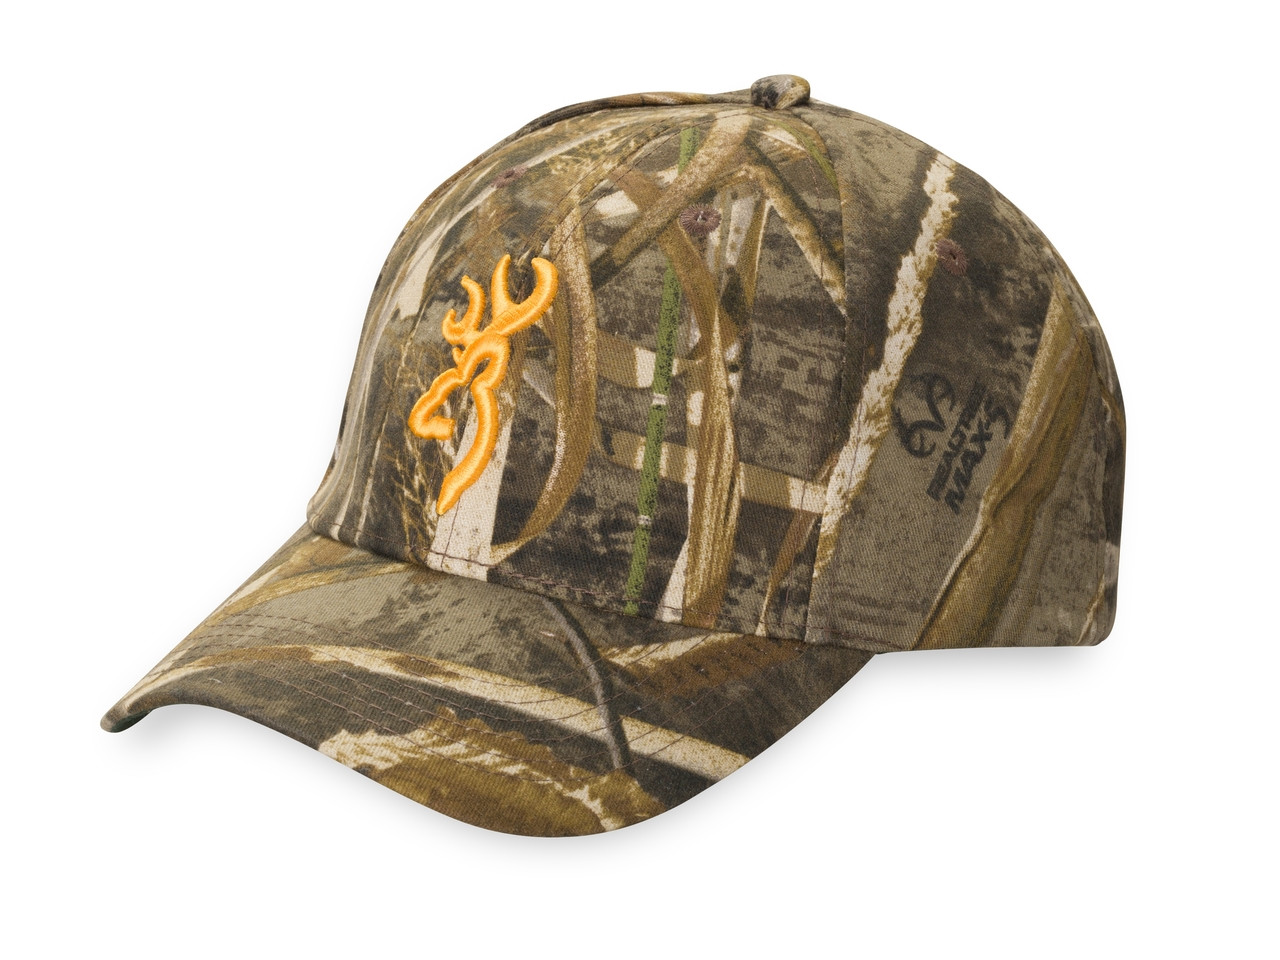 Browning Rimfire Cap-Realtree Max-5 W Yellow 3D Buckmark Logo (308379761).  Your Price   12.62 (You save  7.37). Image 1 e9d7b4dbfeb0